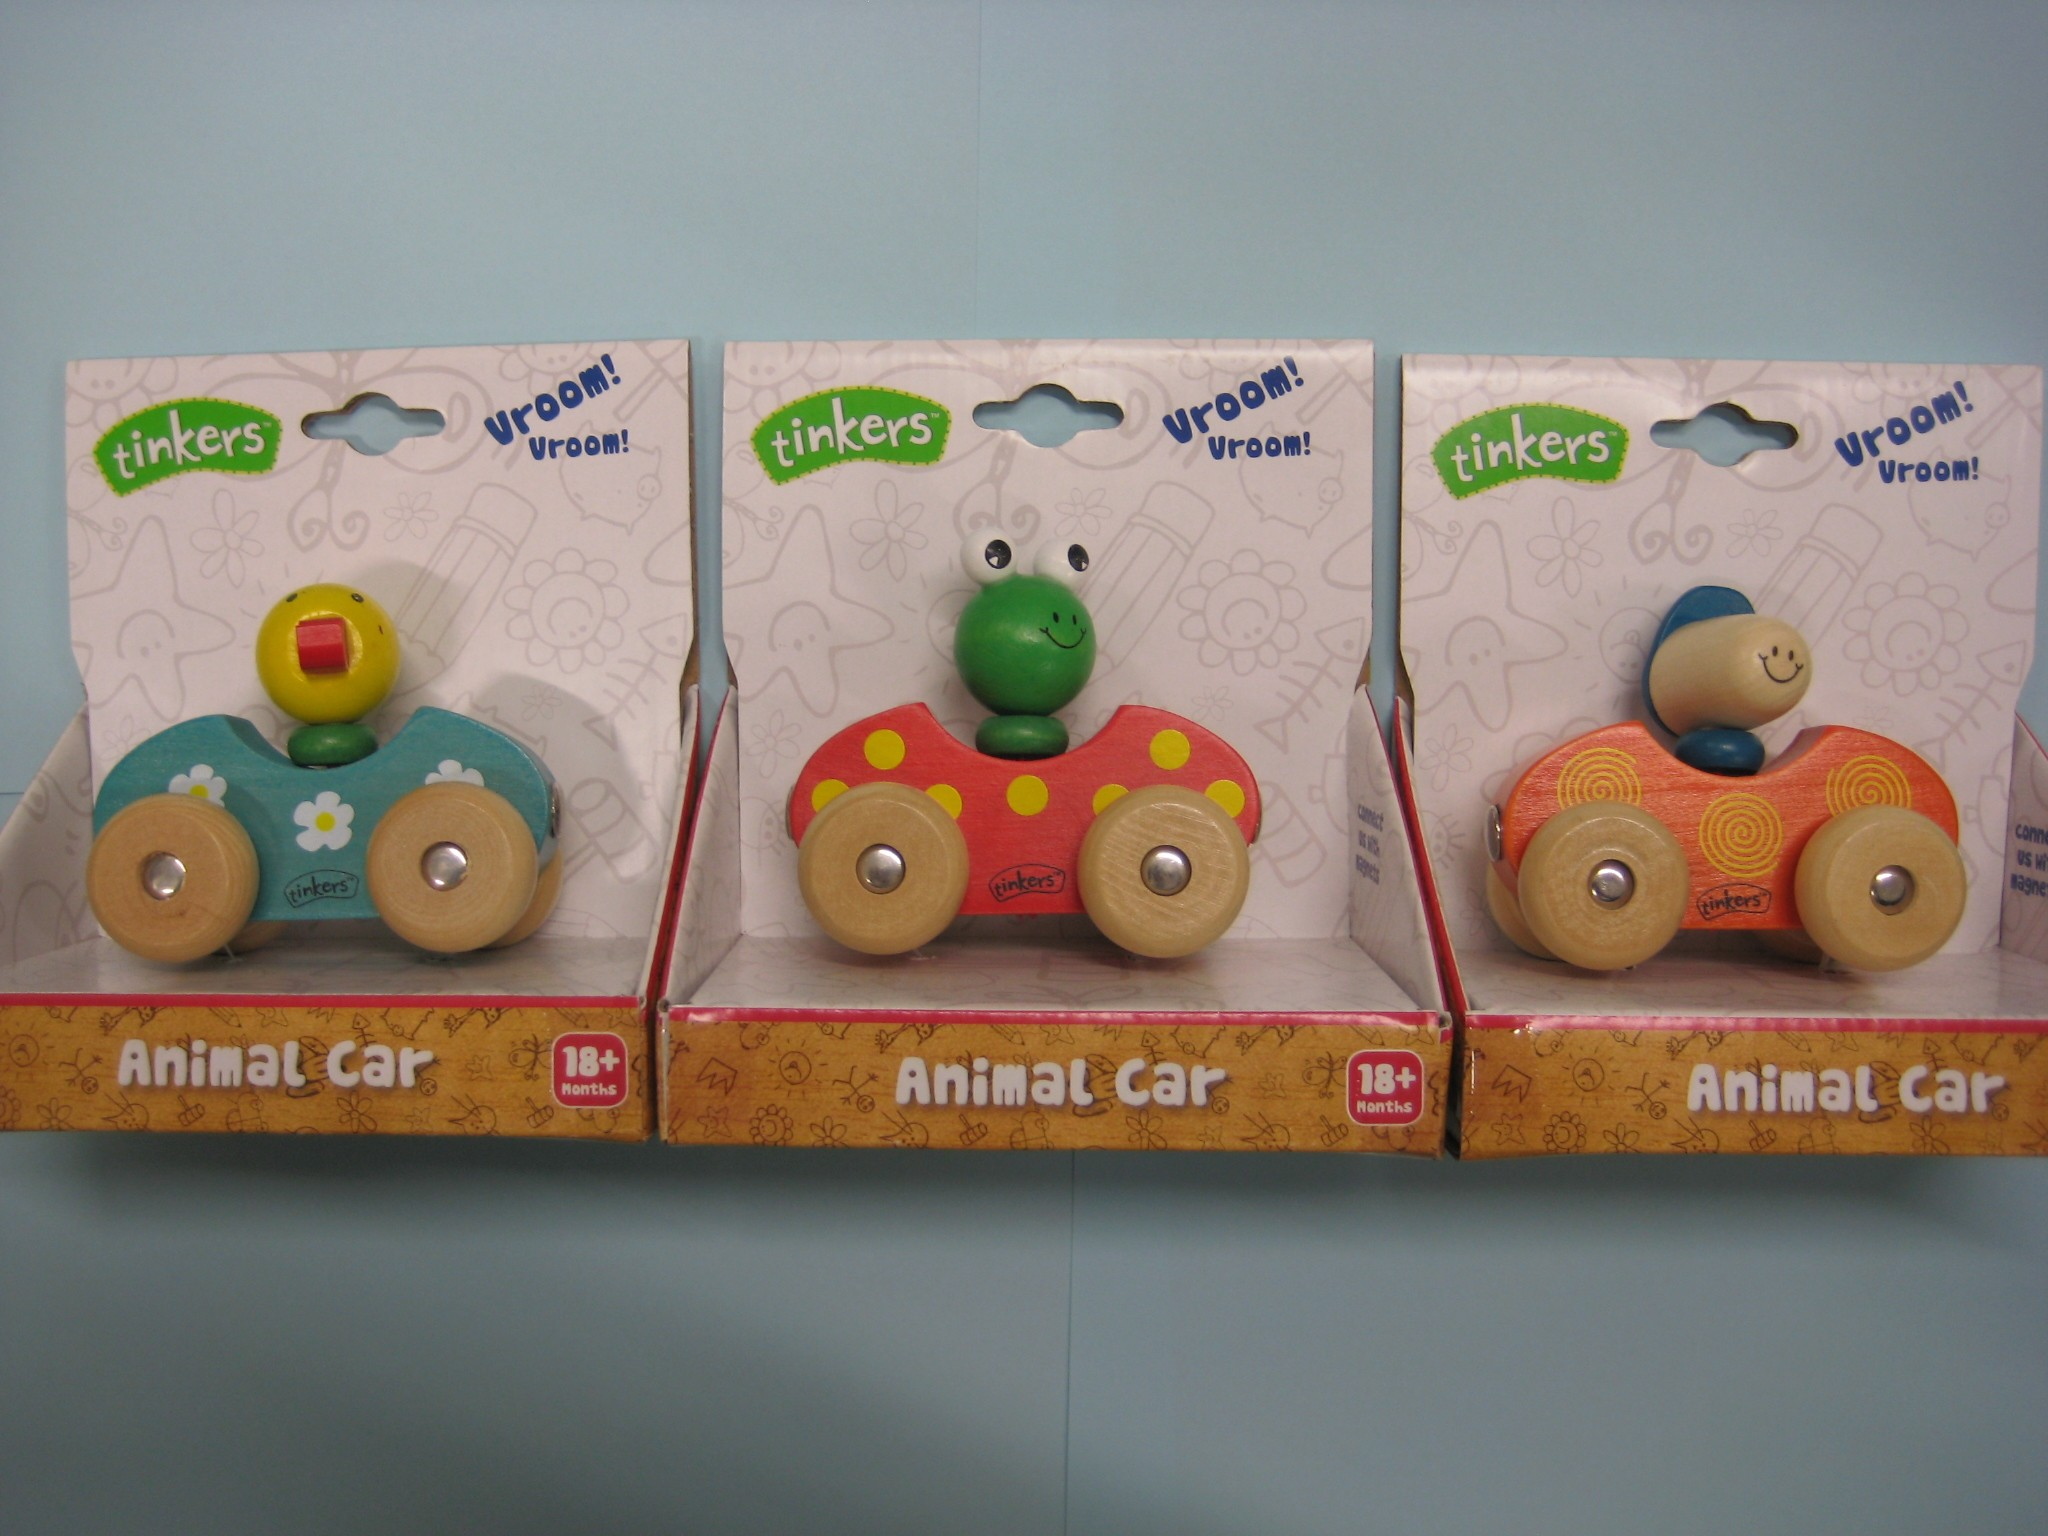 Big W Toy Cars Big W Quottinkers Quot Brand Wooden Toy Animal Cars Product